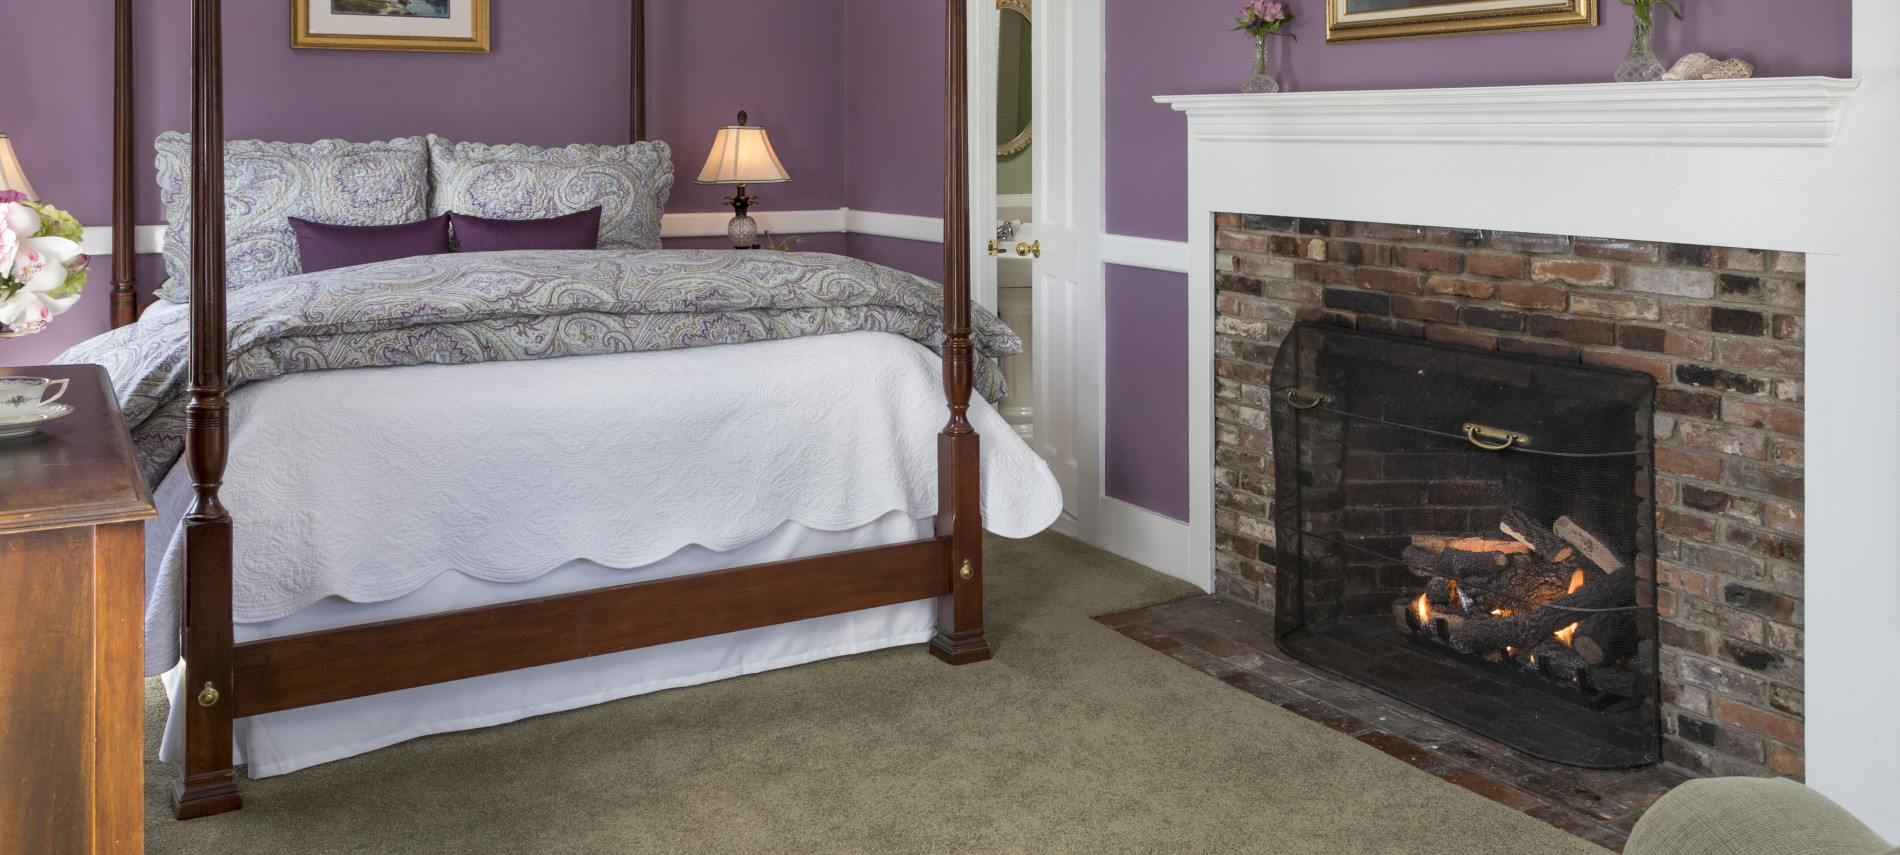 The Windsor room viewed from the couch, featuring a queen sized bed, fireplace, and bedside tables